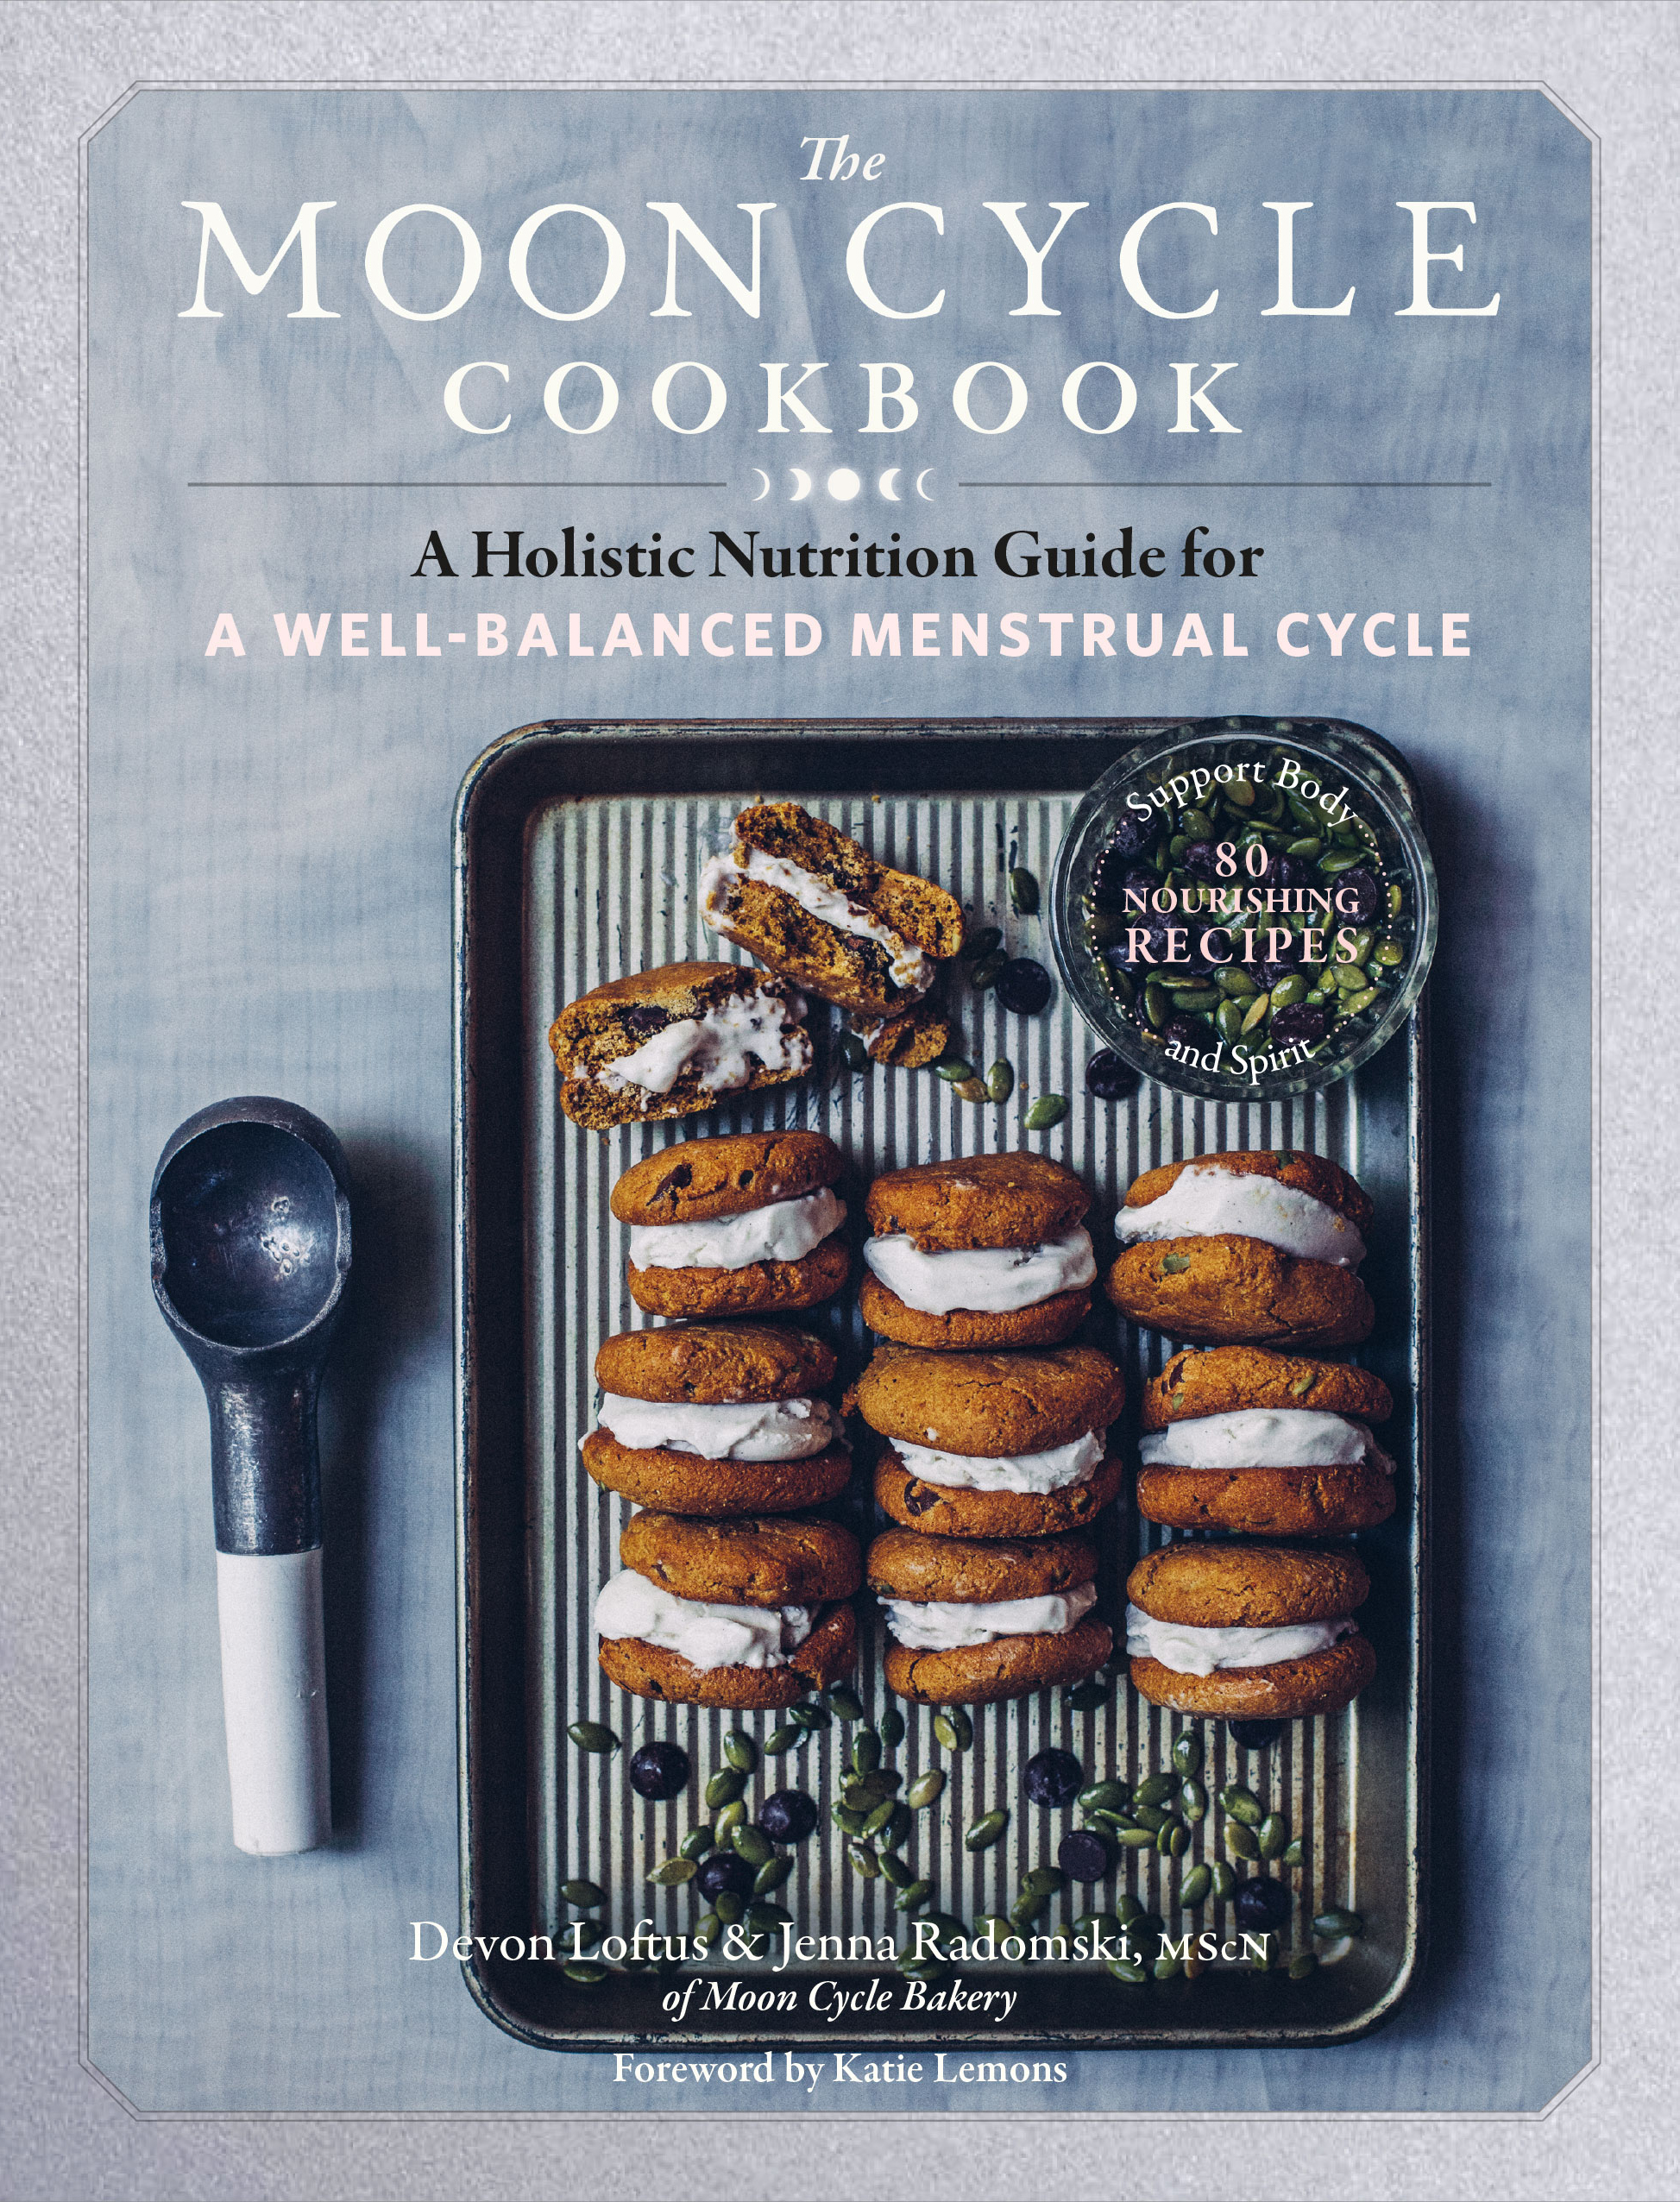 The Moon Cycle Cookbook A Holistic Nutrition Guide for a Well-Balanced Menstrual Cycle - Devon Loftus